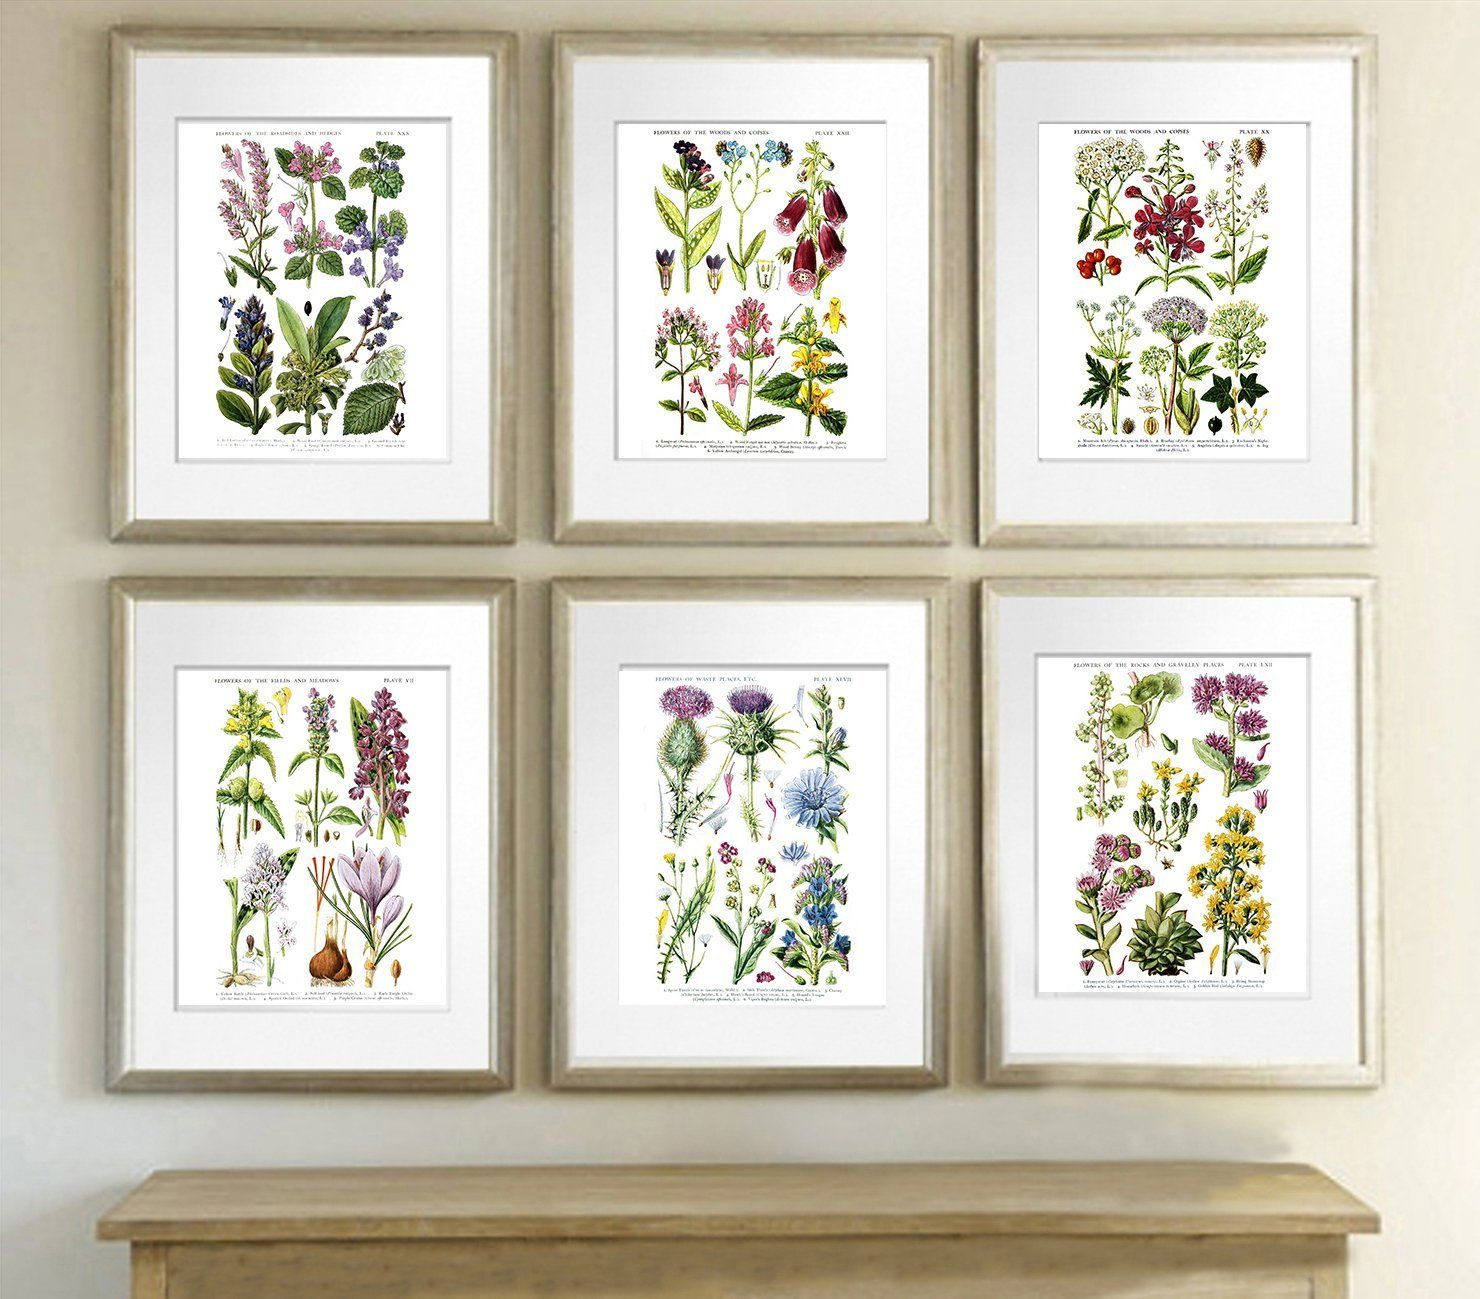 How to frame art prints - Image Result For Framed Photos Of Wildflowers How To Display